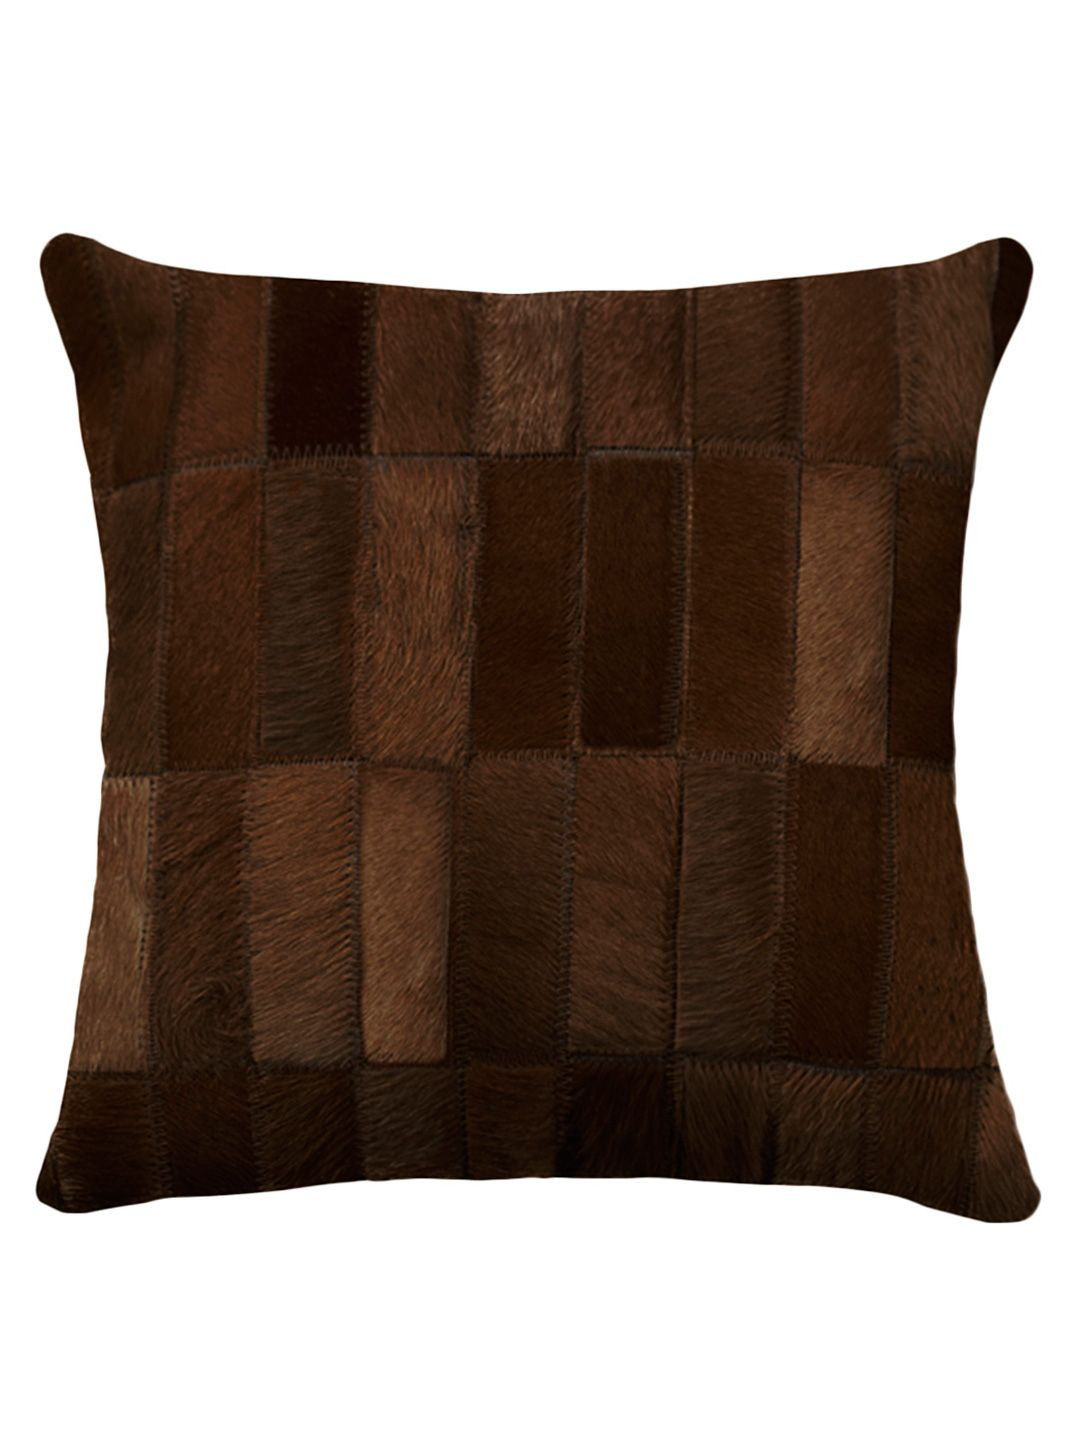 Torino Madrid Cowhide Pillow